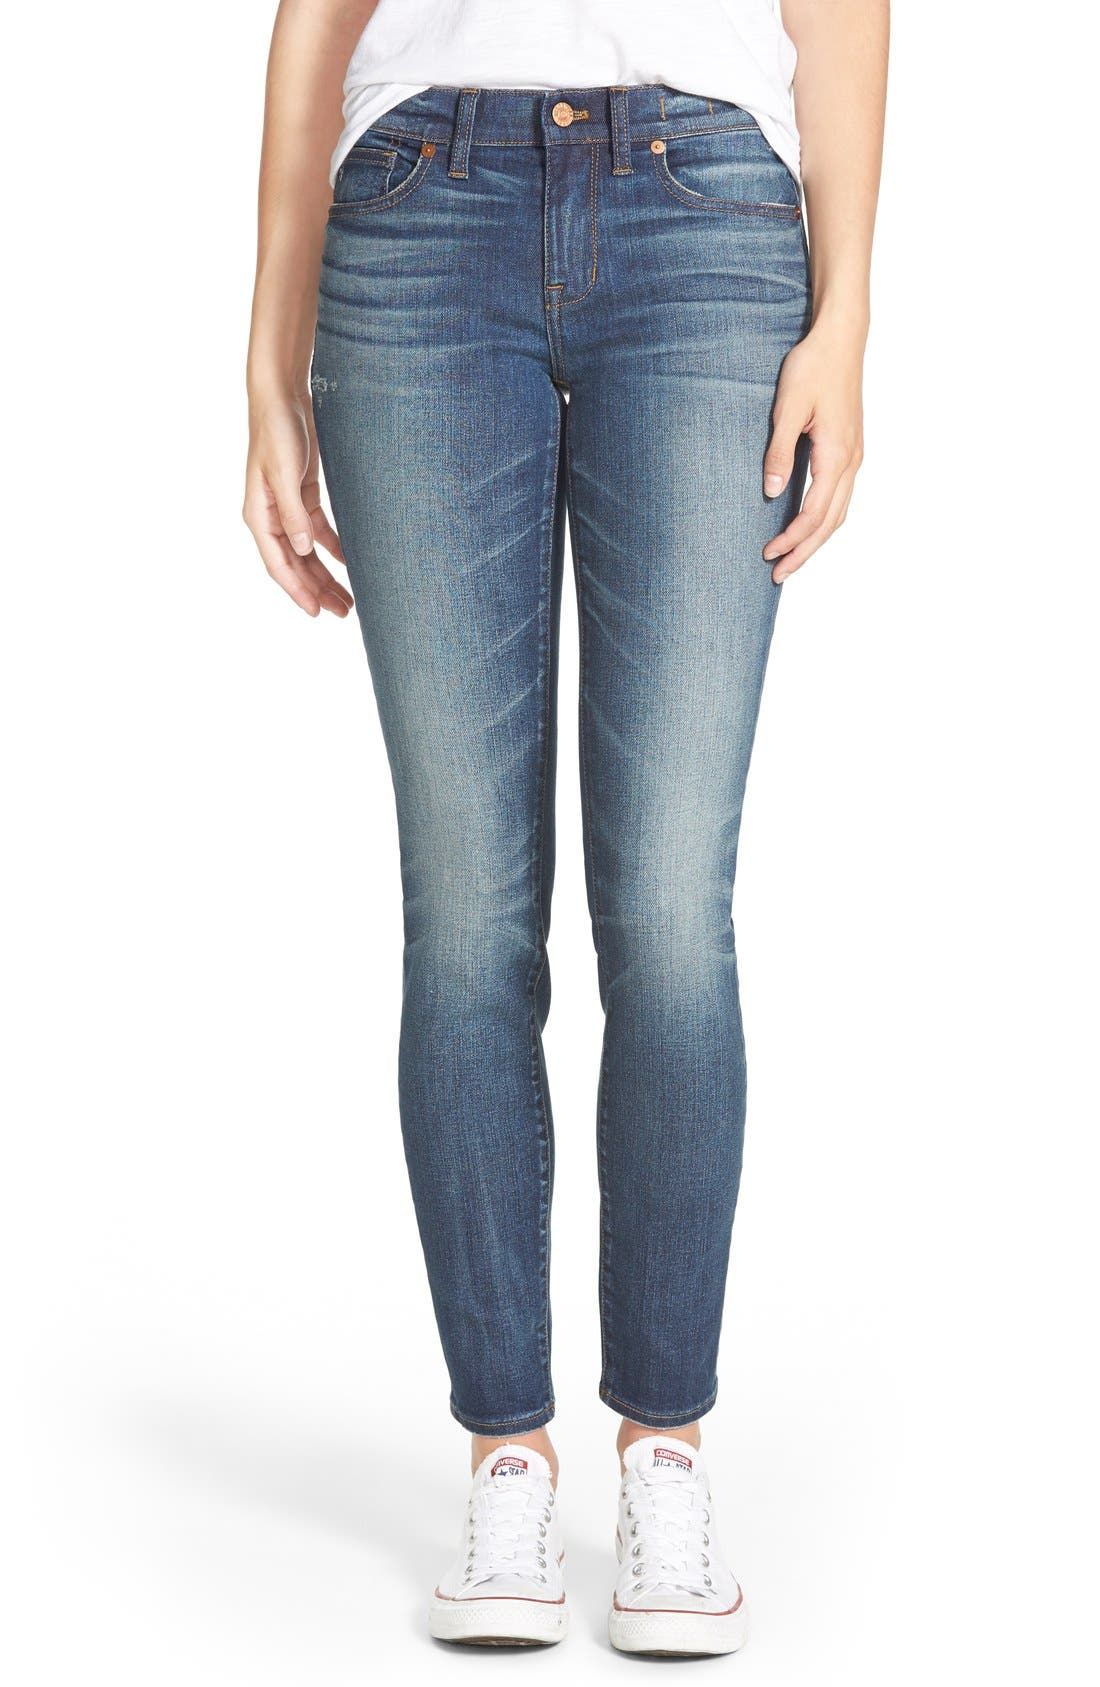 Main Image - Madewell 'Skinny Skinny - Taller' Jeans (Edmonton Wash) (Long)